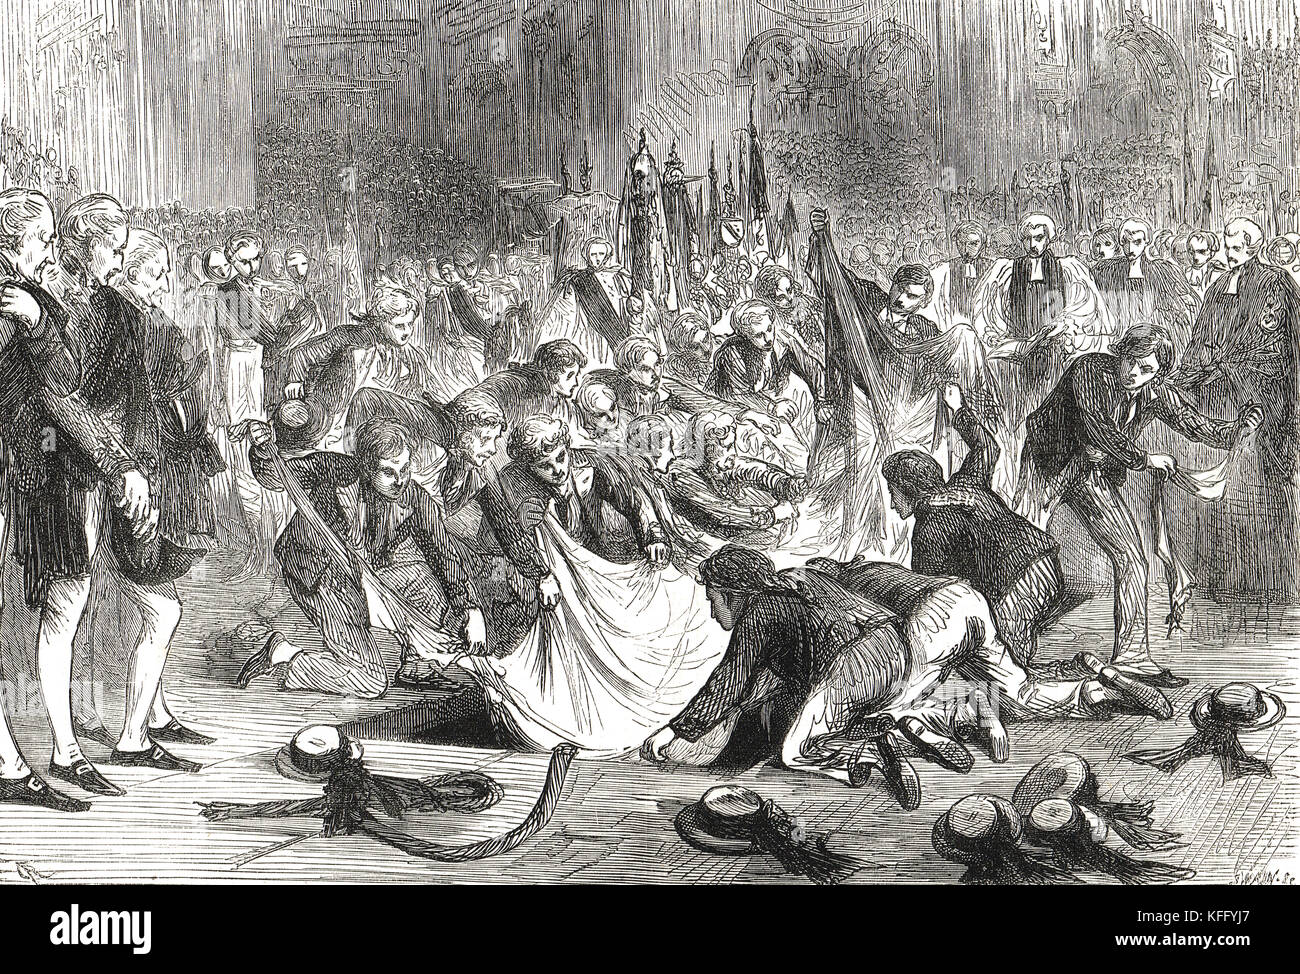 Incident at Nelson's funeral, St Paul's Cathedral, 9 January 1805, Seamen tearing his flag apart for souvenirs - Stock Image